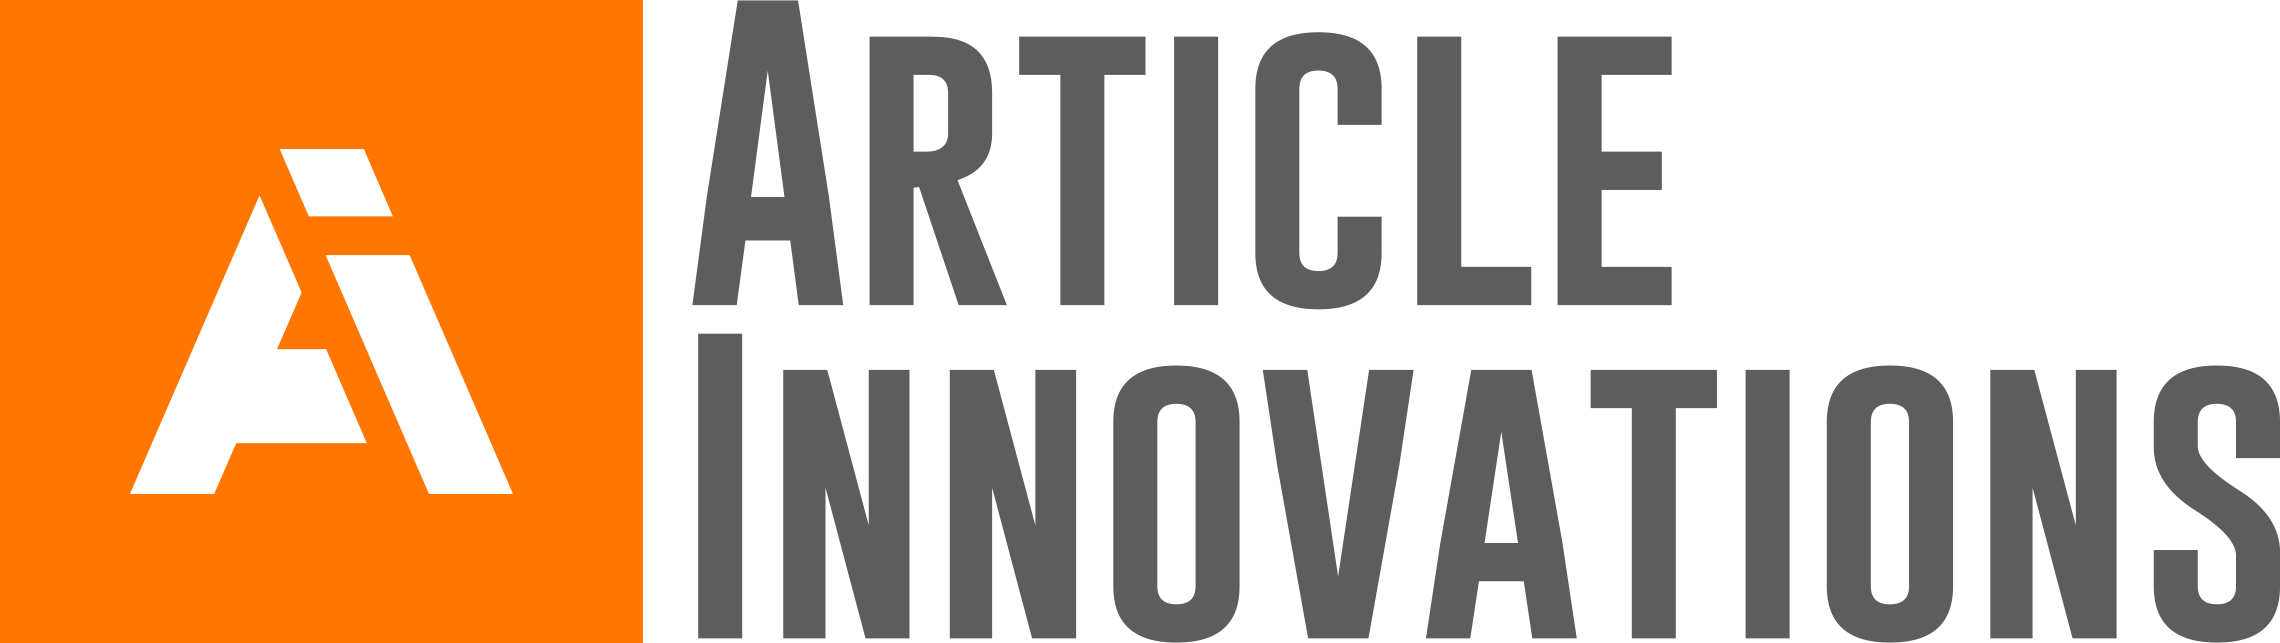 Article Innovations